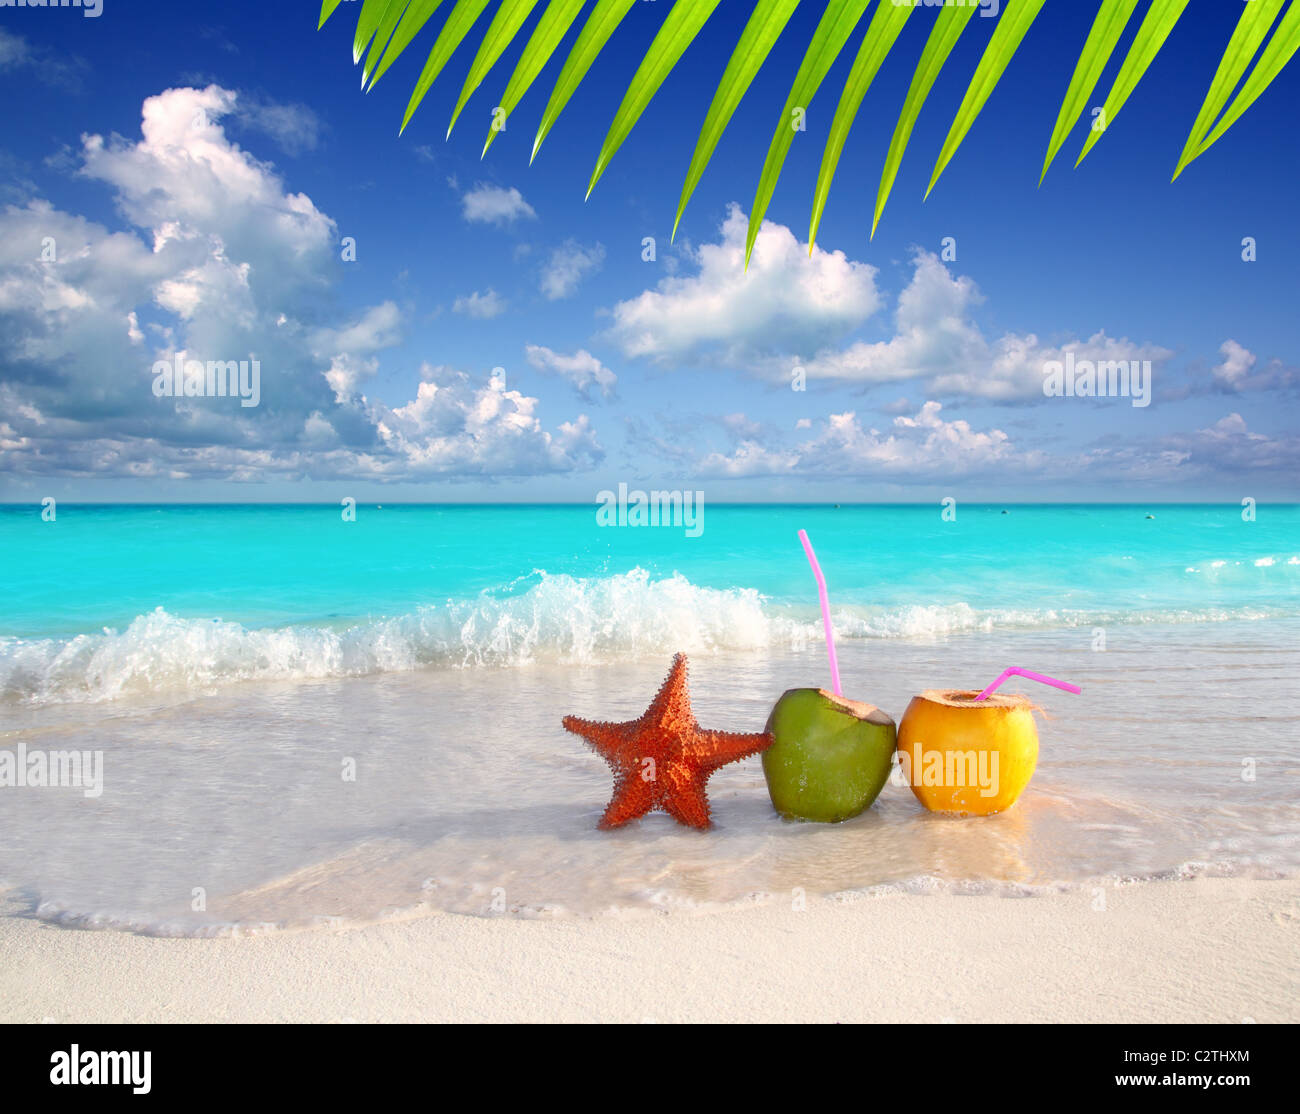 coconut cocktails juice and starfish in tropical aqua beach Caribbean - Stock Image